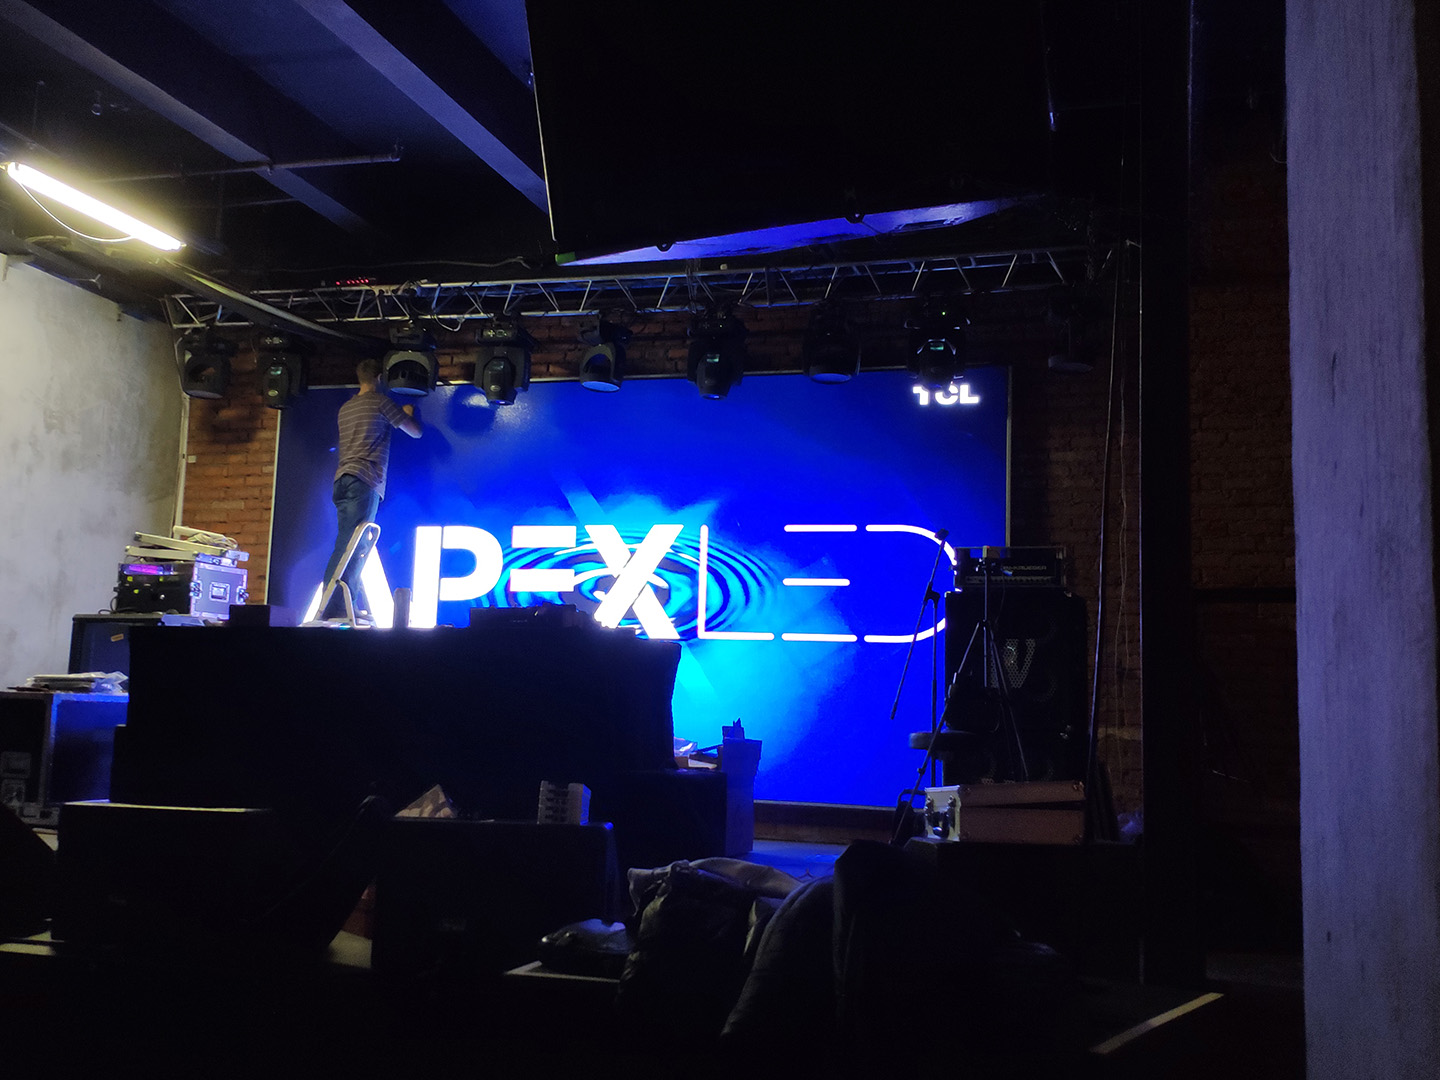 APEX-LED:  BX-YQ3AE + BX-V75 16 шт, 1200х640px